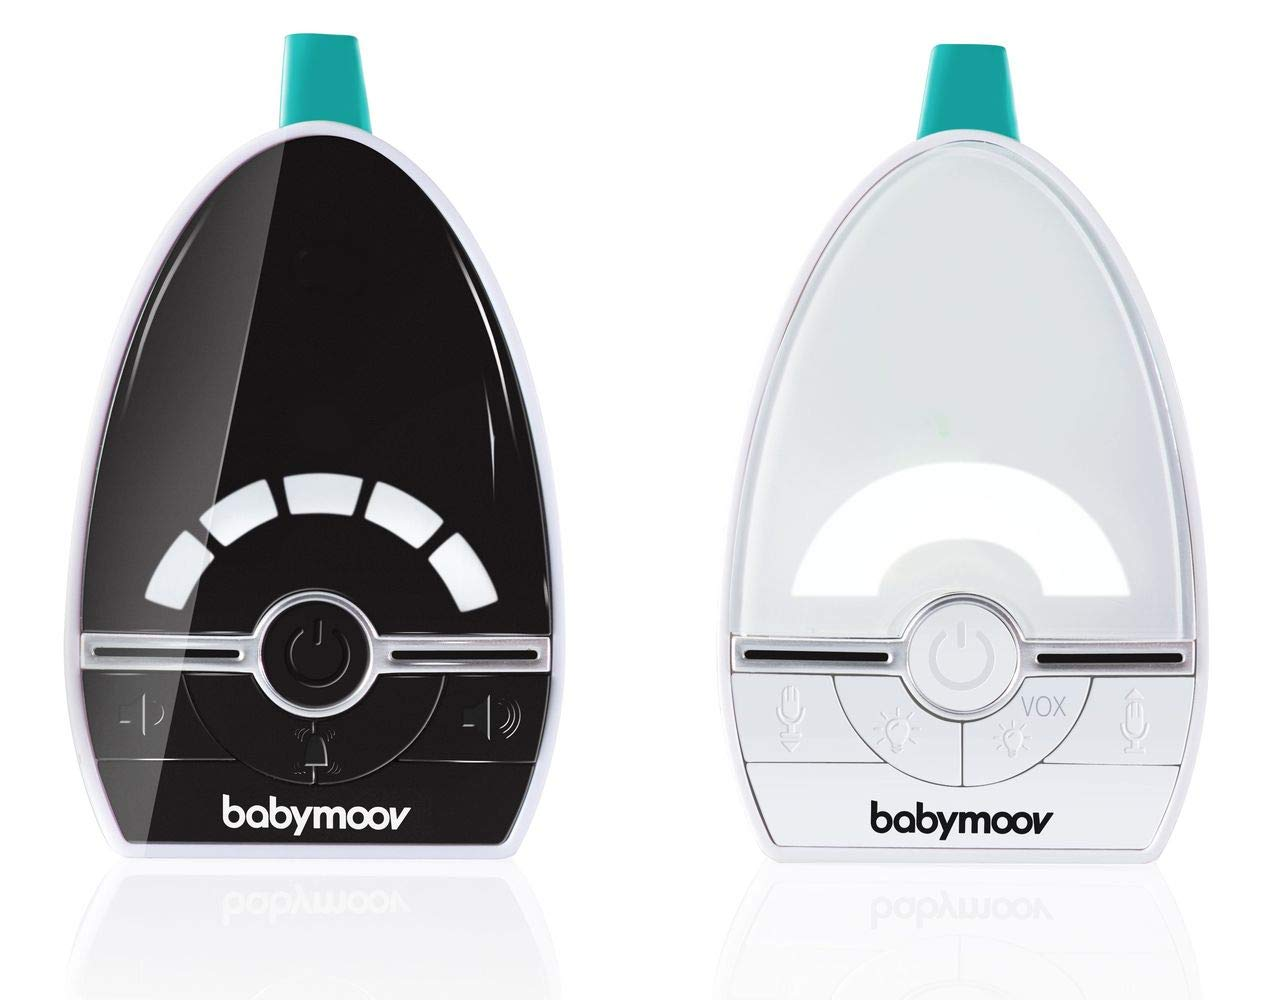 BABYMOOV Expert Care Compact Audio Monitor, 1000 m BABYMOOV Digital green technology: this innovation reduces wave emissions from your baby monitor and guarantees the longest range on the market. expert care has a 1000m range: ideal for an apartment/ house Essential functions: it has a 3-alert vex mode (visual, audio, or vibration), an out-of-range/ low battery alarm, and automatic channel search Night light included: expert care includes a night light in the baby unit. this audio baby monitor emits a soft, reassuring light in your baby's room 1